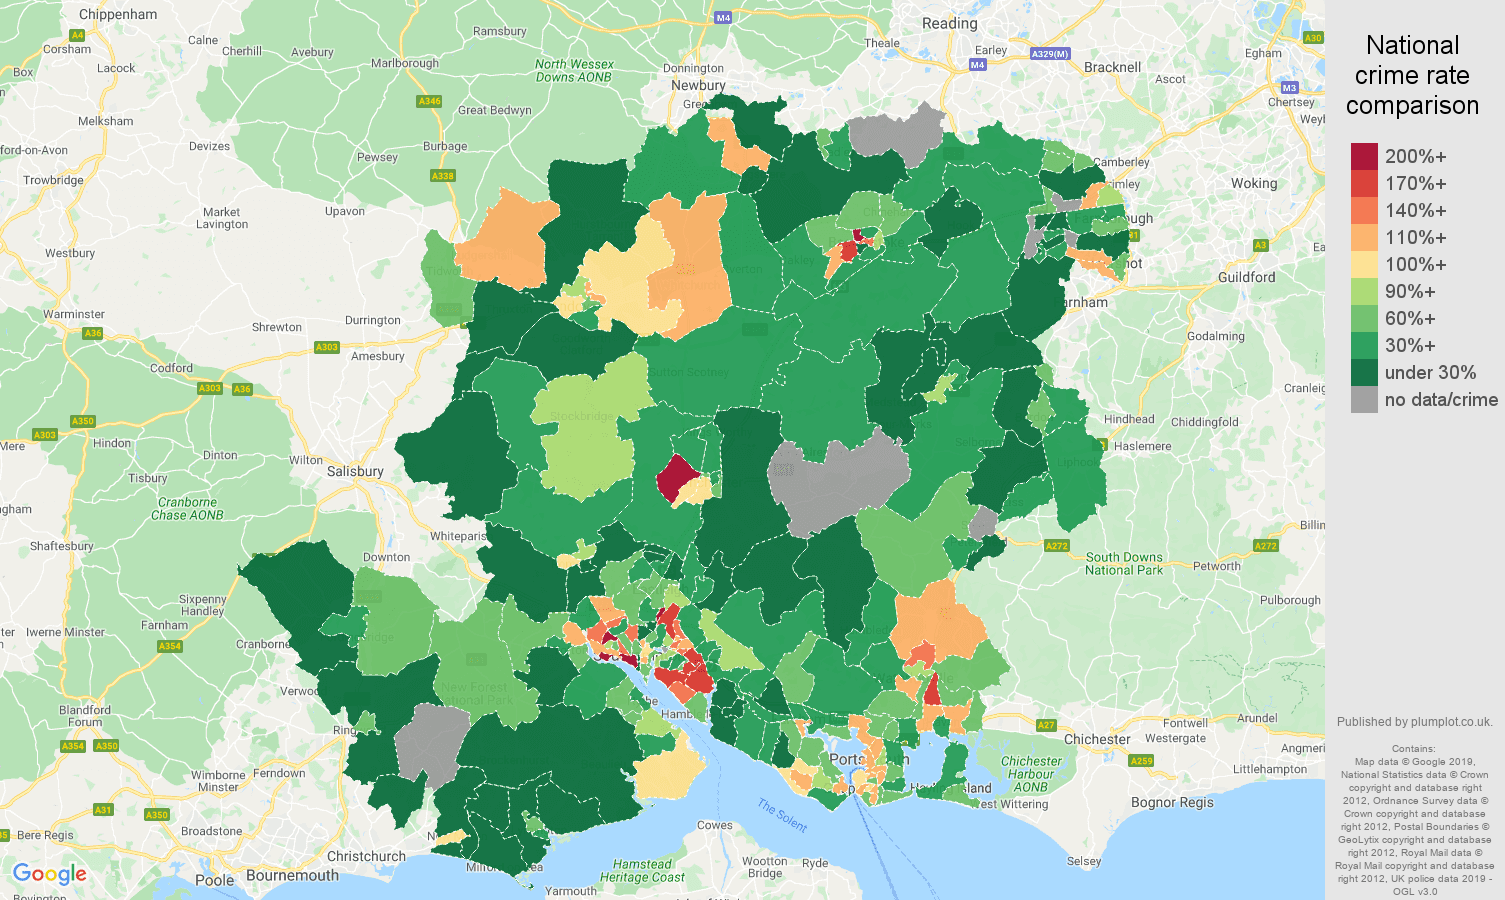 Hampshire other crime rate comparison map